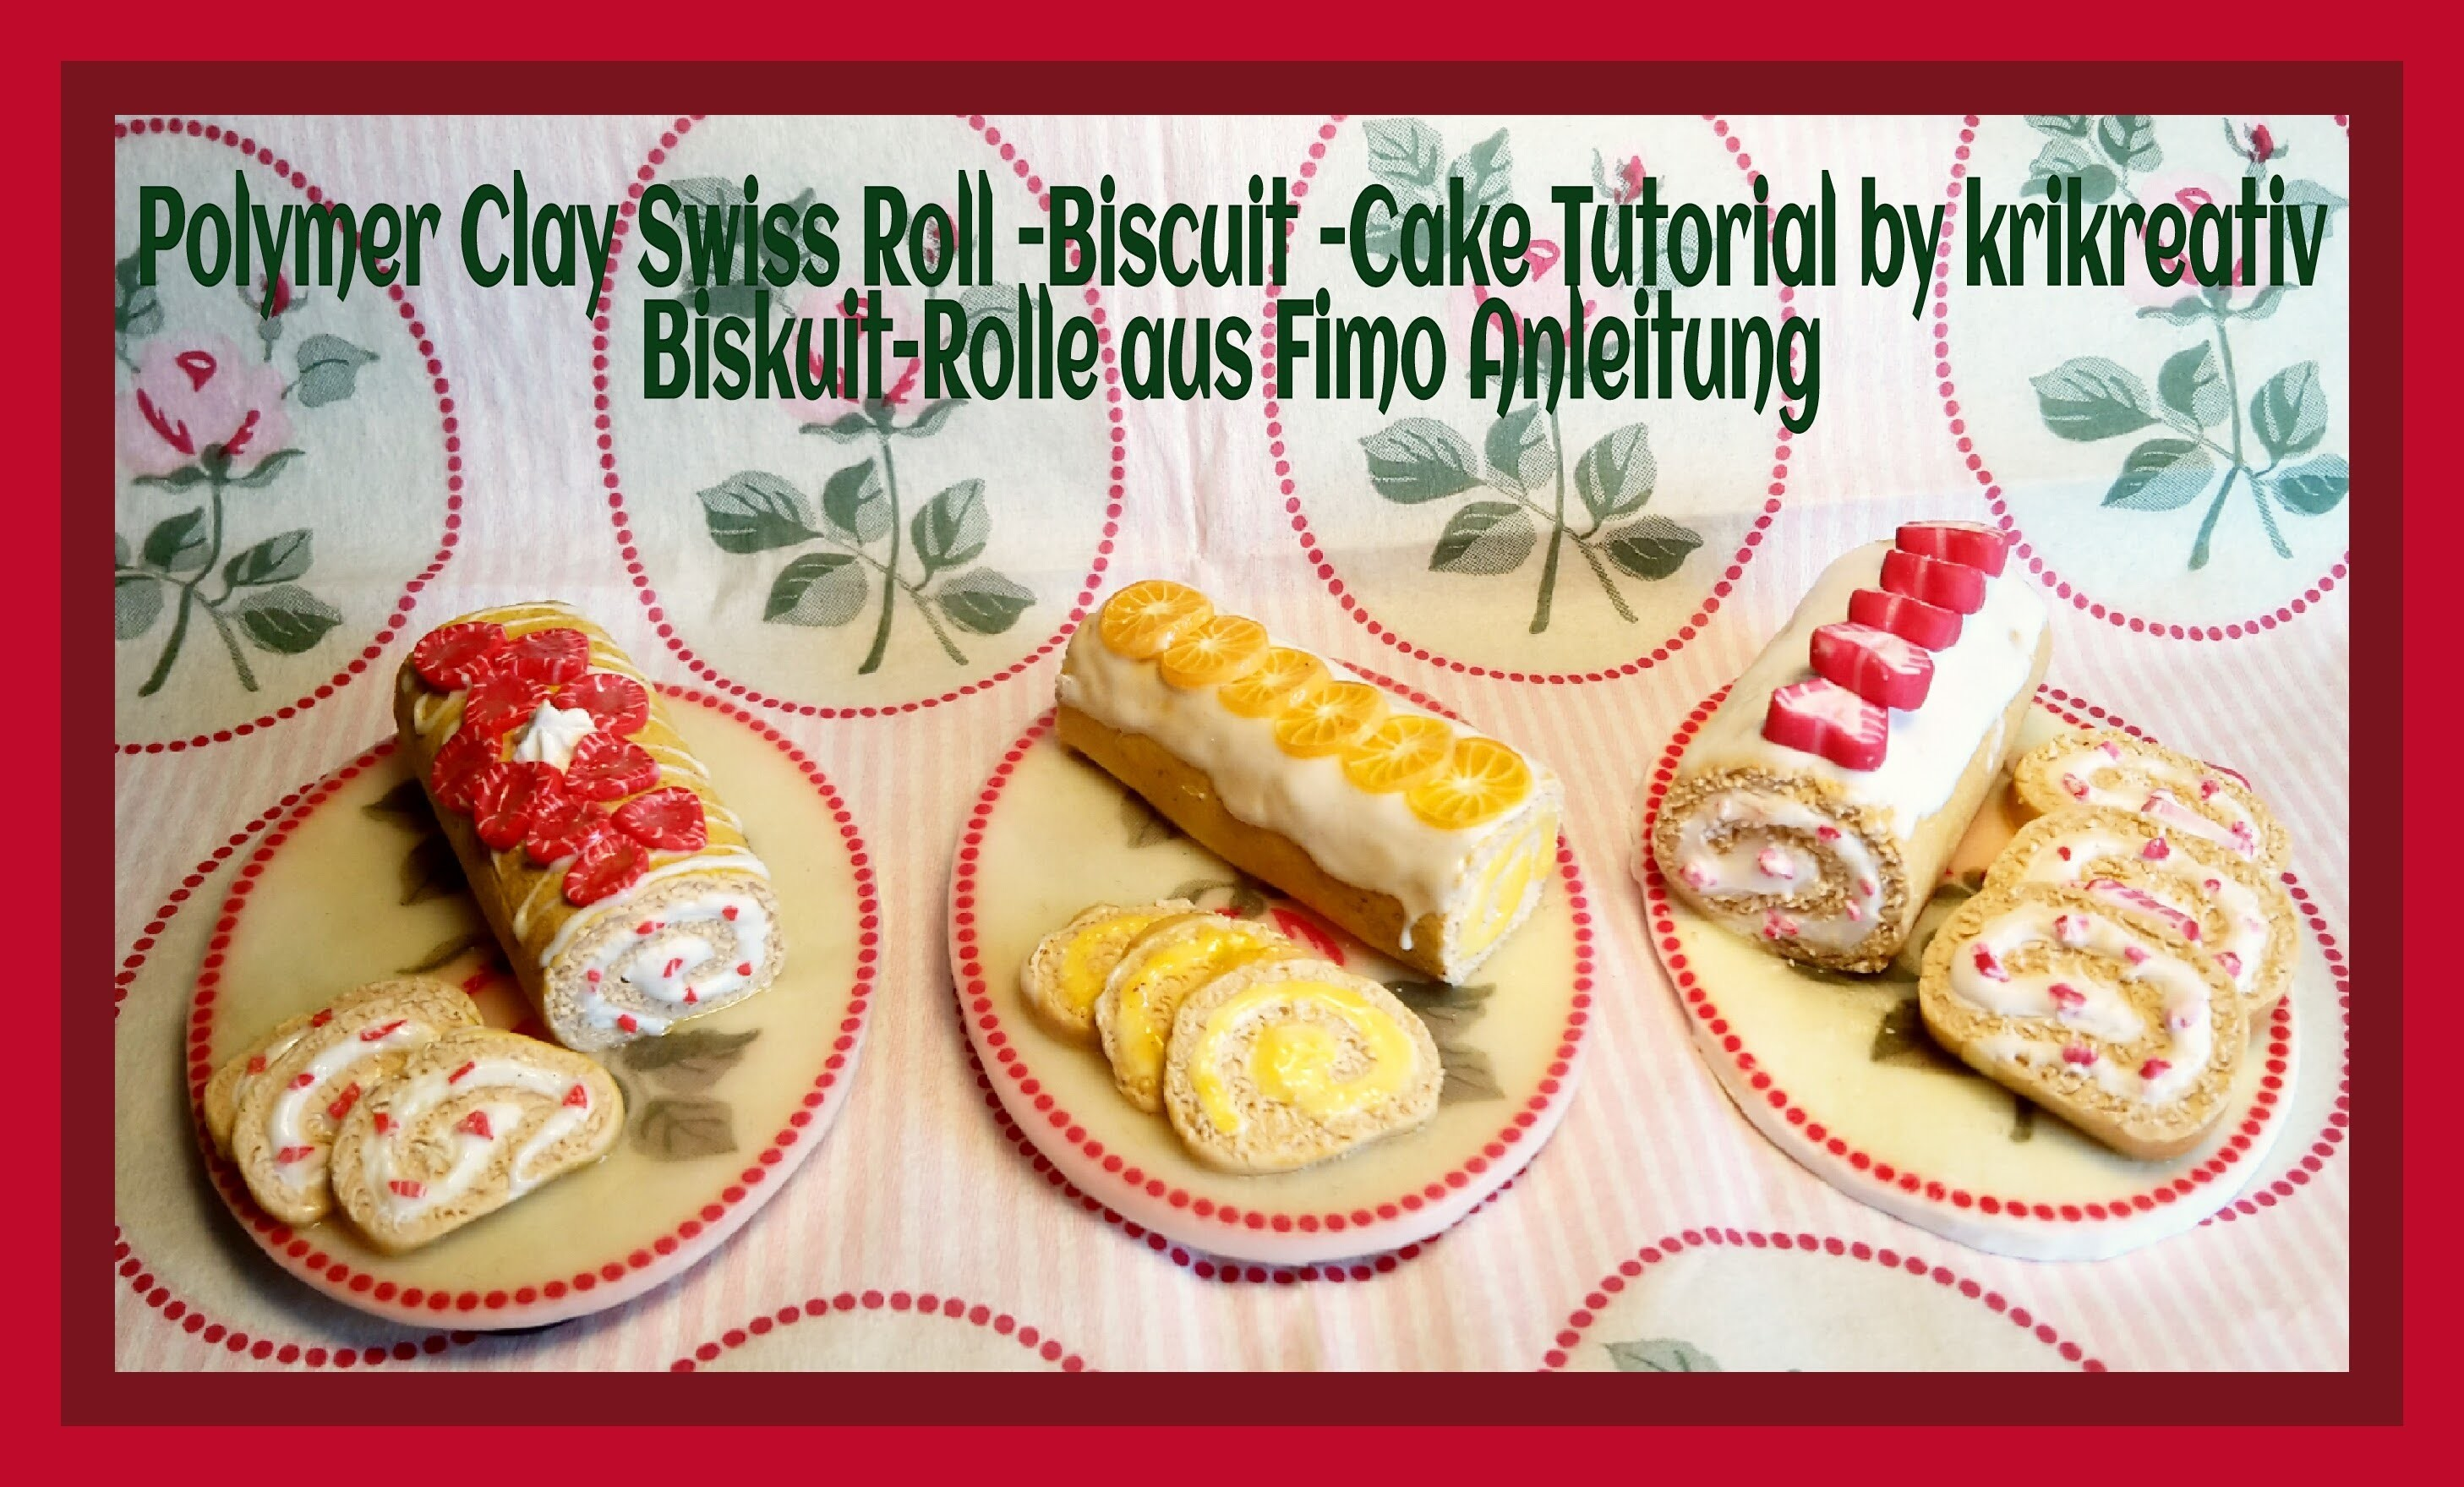 Polymer Clay Swiss Roll Tutorial (Biscuit Cake) by krikreativ, Biskuit-Rolle aus Fimo